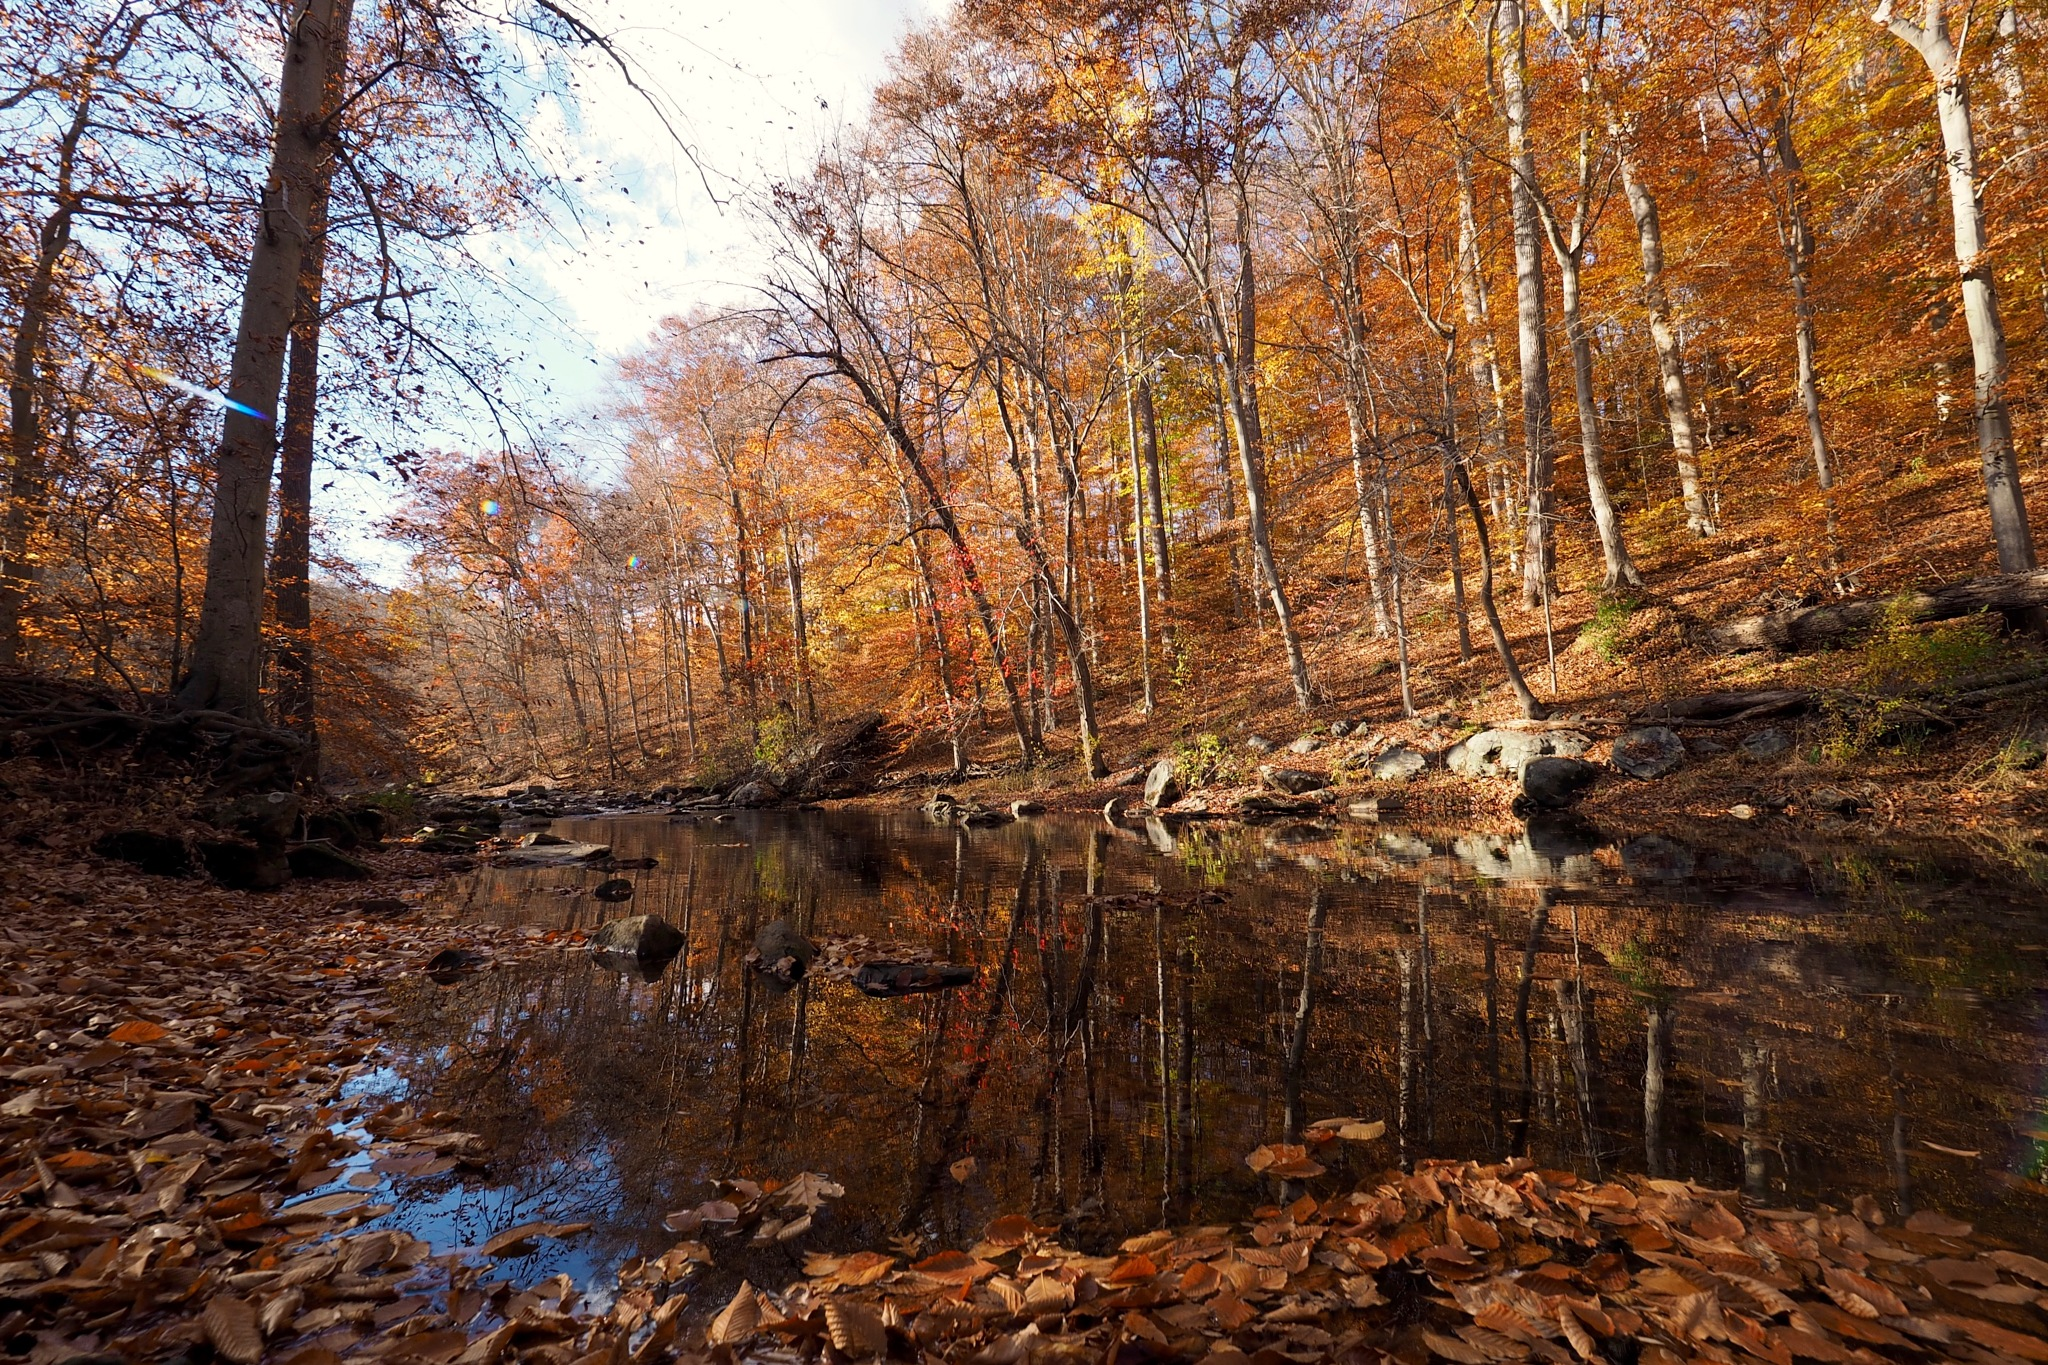 Creekside by Shawn456